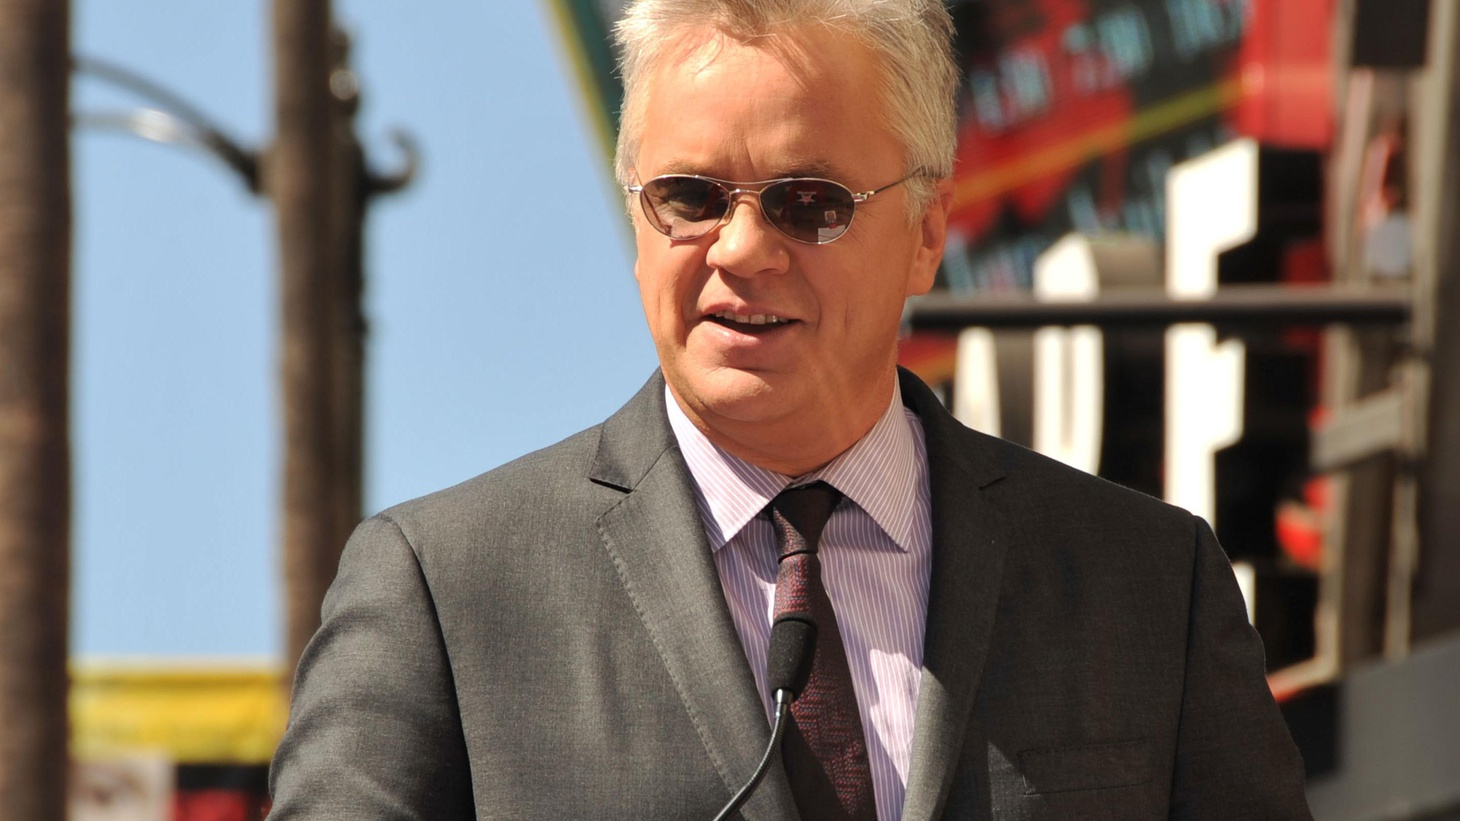 Actor and activist Tim Robbins talks about his upcoming music and culture series WTF? Festival which will feature a variety of artists including: Jackson Browne, Sarah Silverman, Gore Vidal and Ben Gibbard when he joins Morning Becomes Eclectic in the 10 o'clock hour.